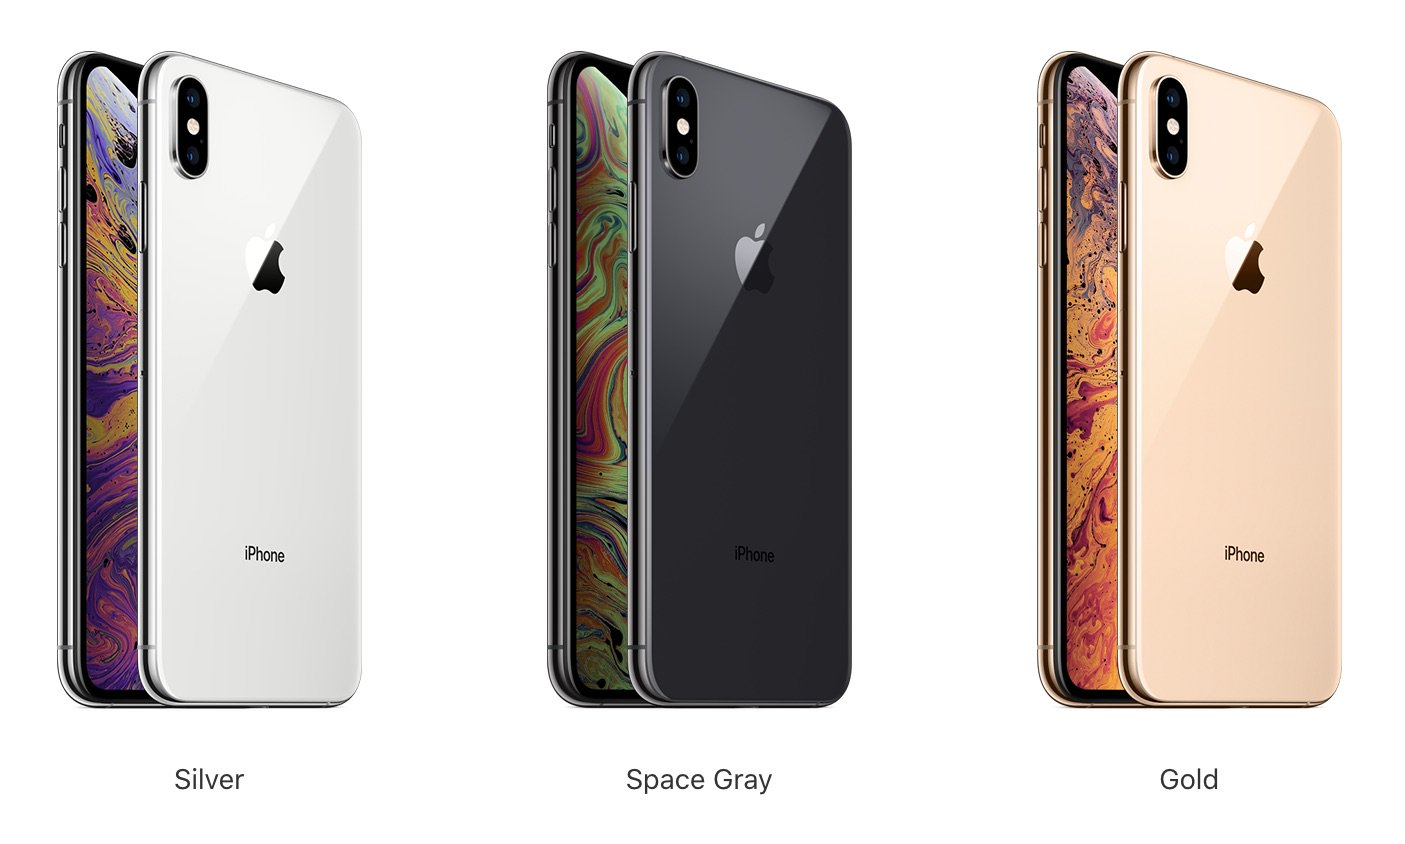 j23 iphone app on twitter iphone xs max with 512gb is. Black Bedroom Furniture Sets. Home Design Ideas